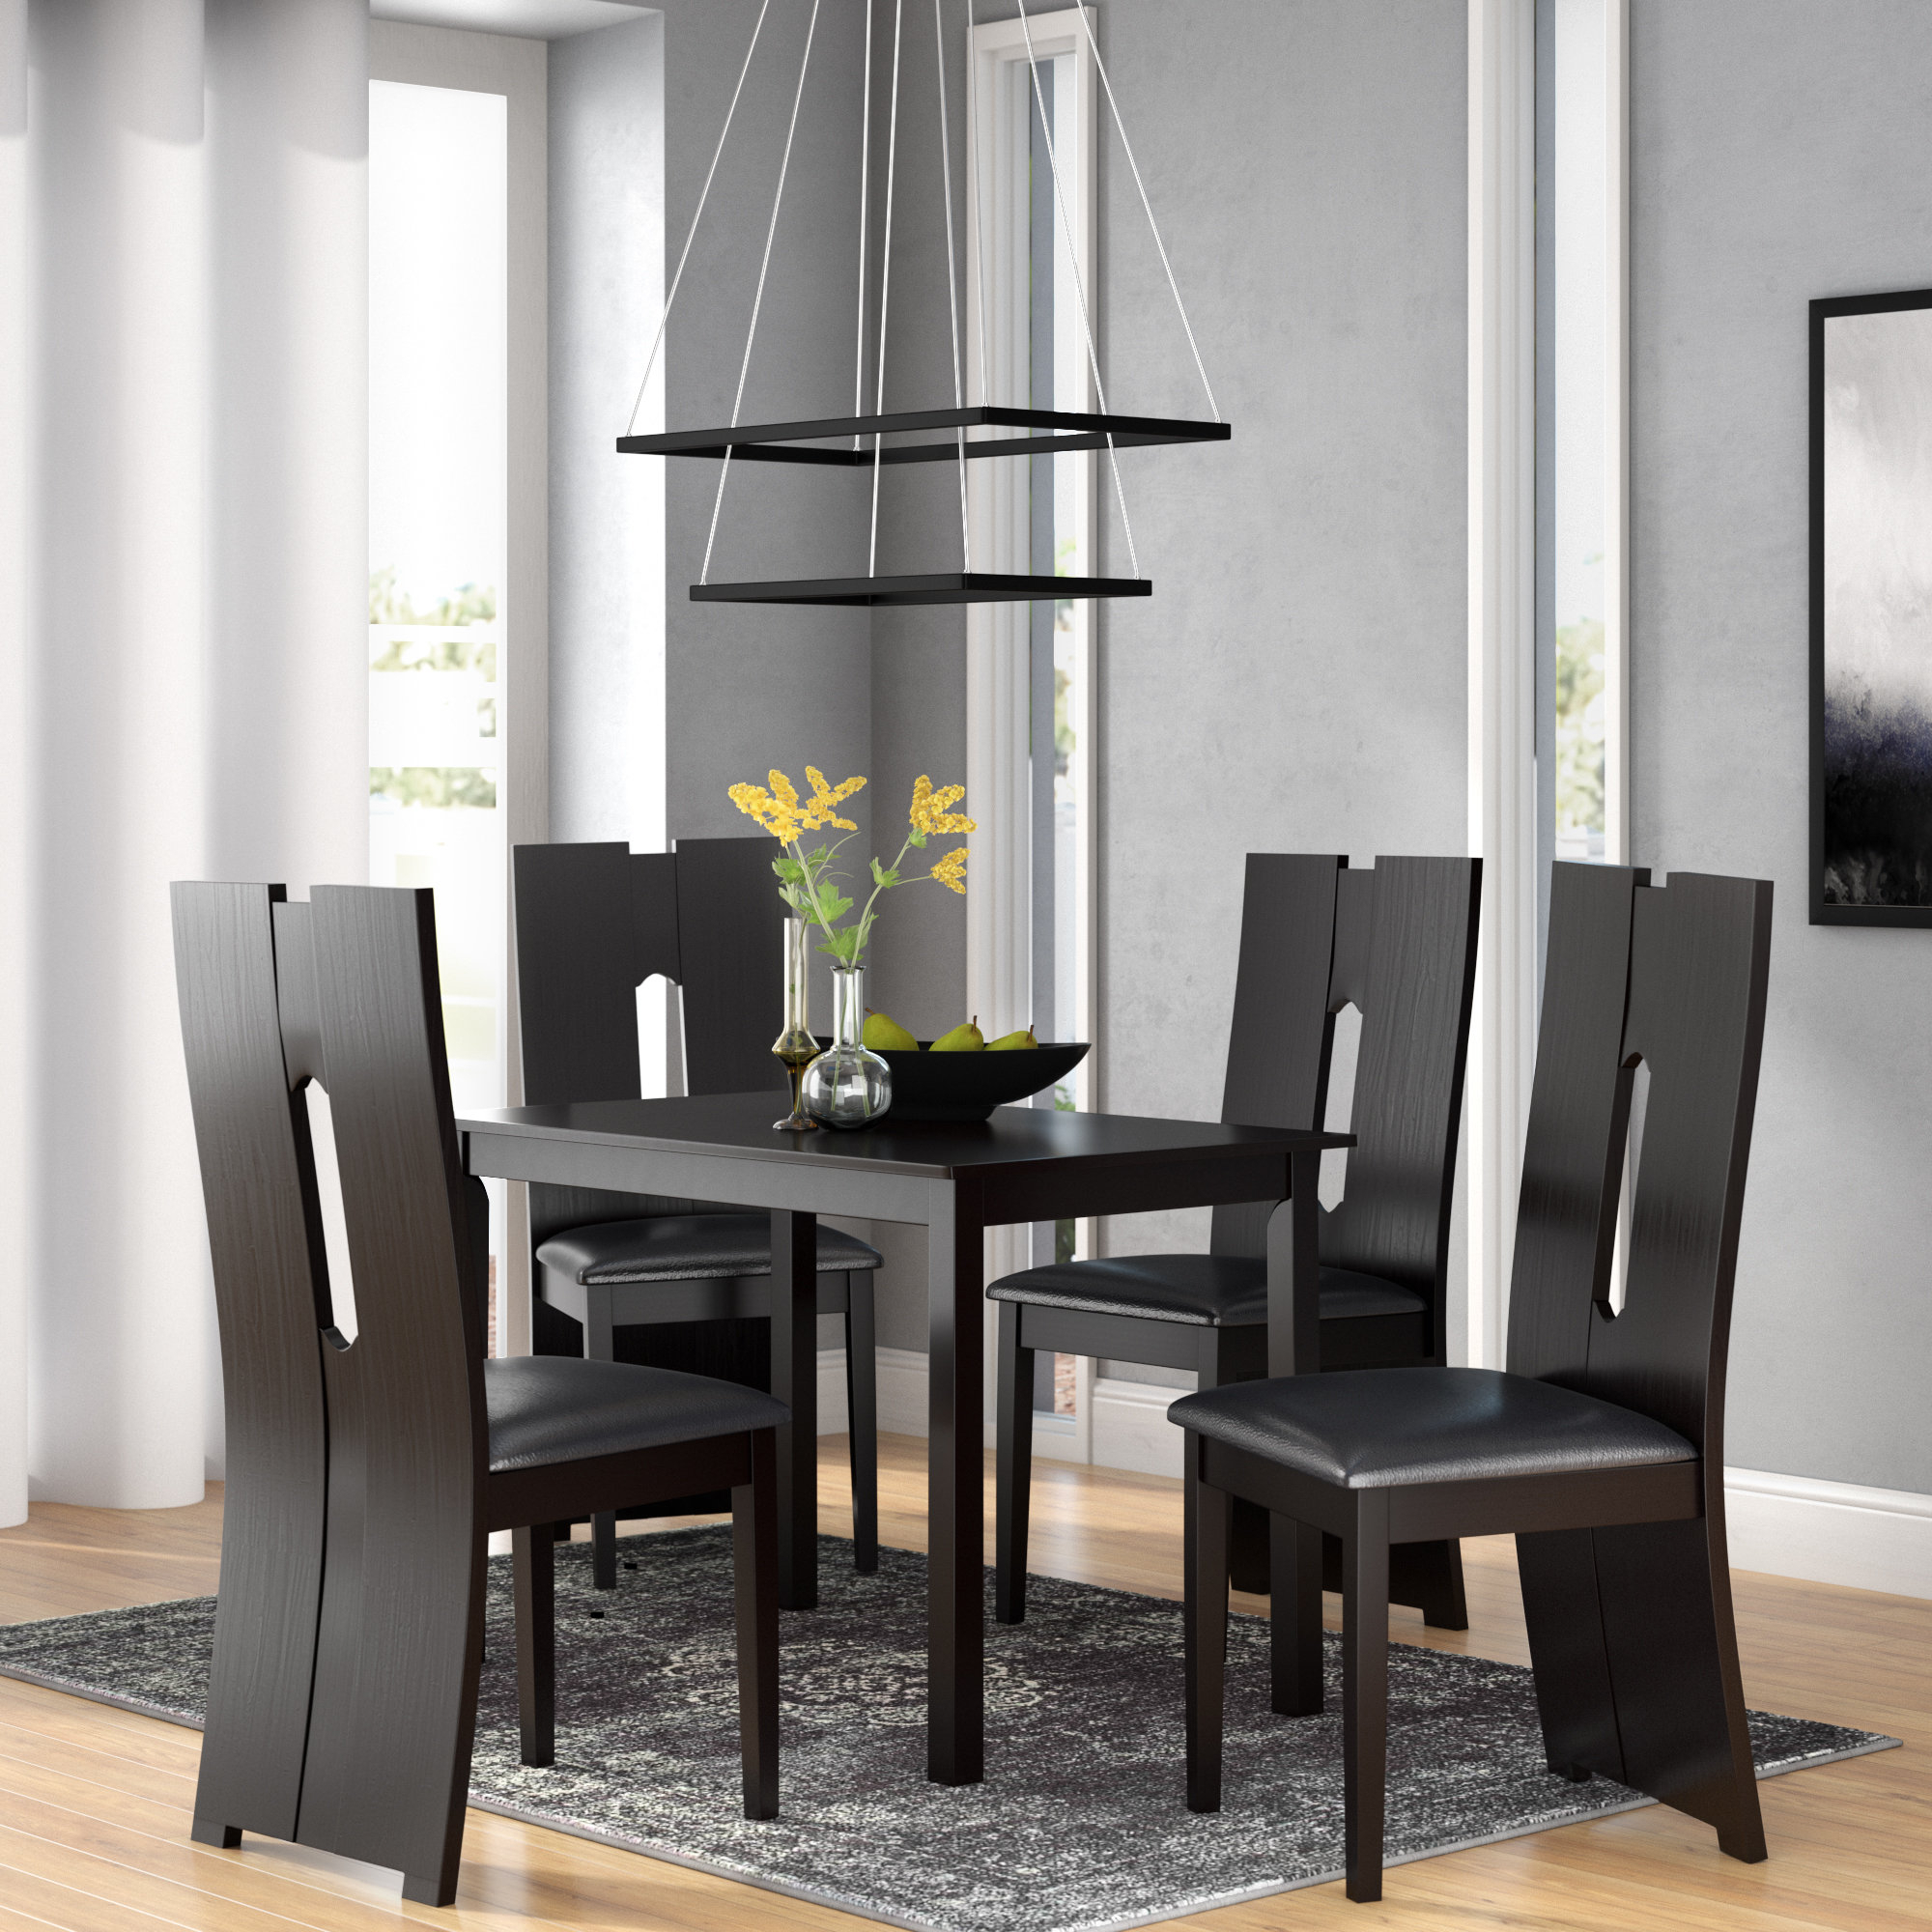 Orren Ellis Onsted Modern And Contemporary 5 Piece Breakfast Nook Within Current 5 Piece Breakfast Nook Dining Sets (View 5 of 25)